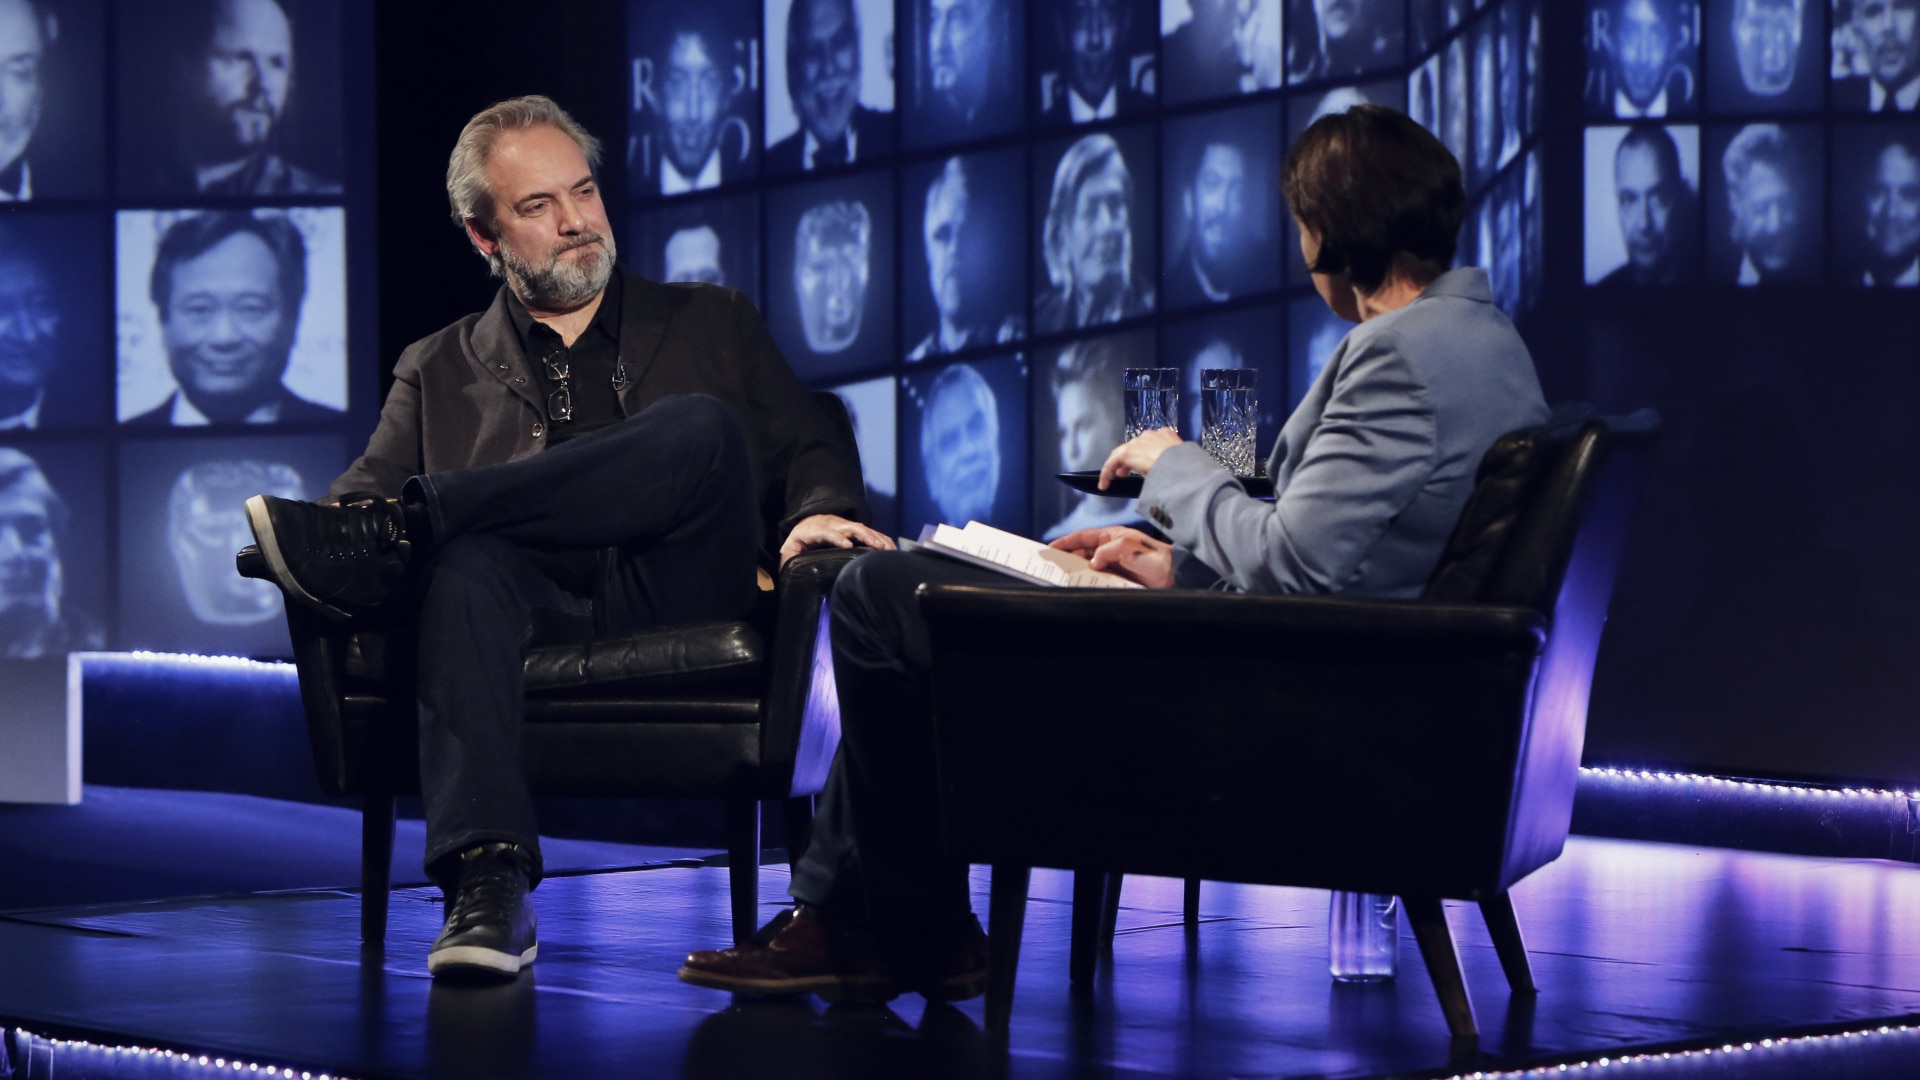 BAFTA: Sam Mendes Life in Pictures